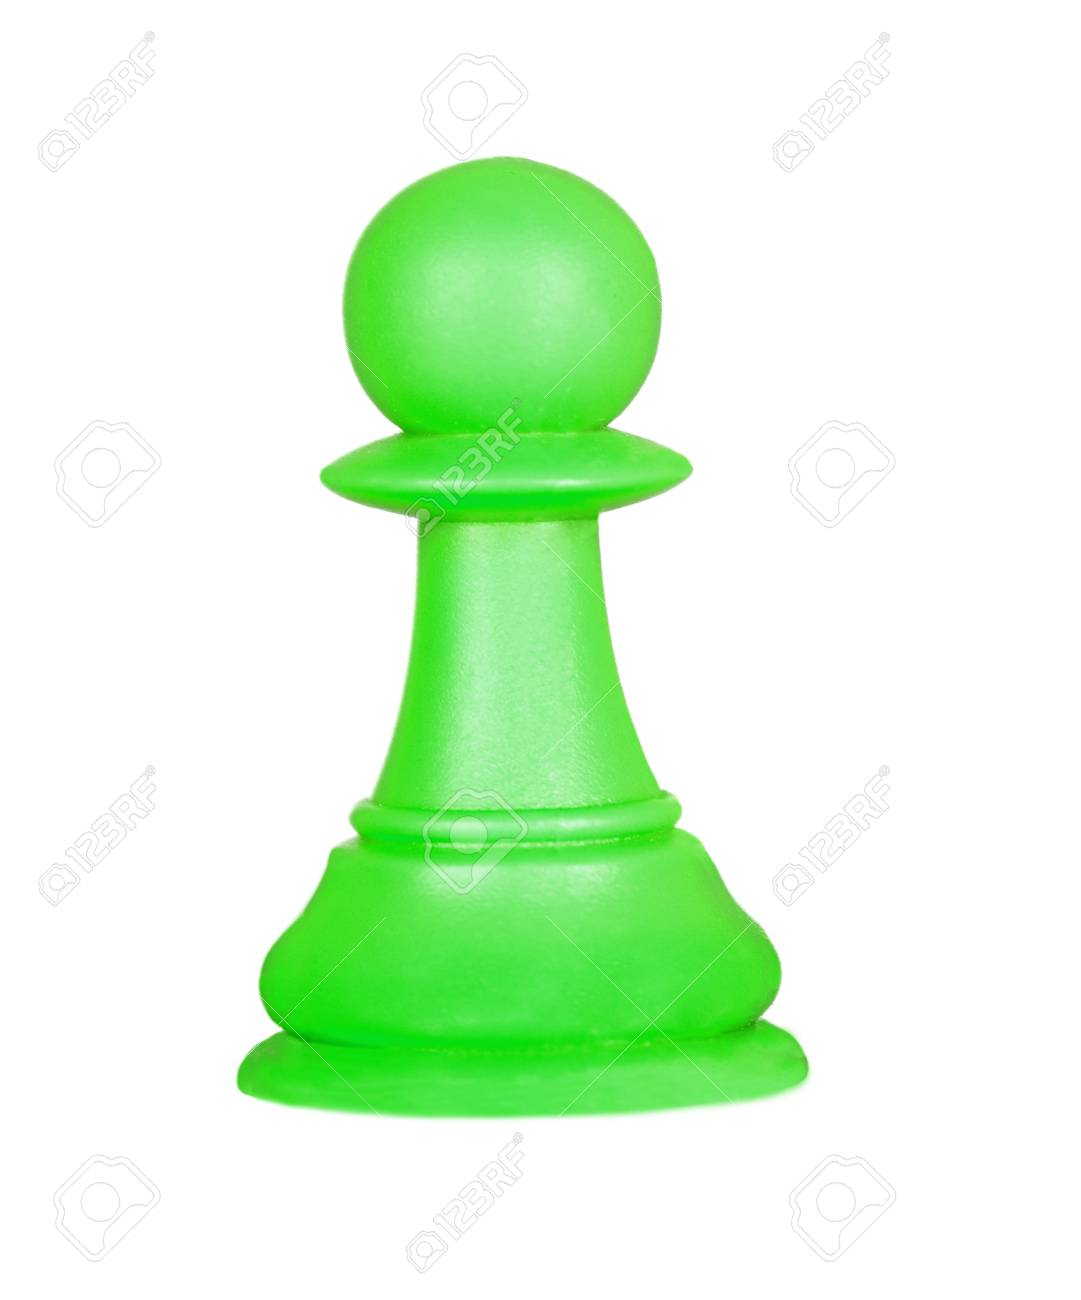 The Pawn Chess Piece Isolated On A White Background Stock Photo 1081x1300